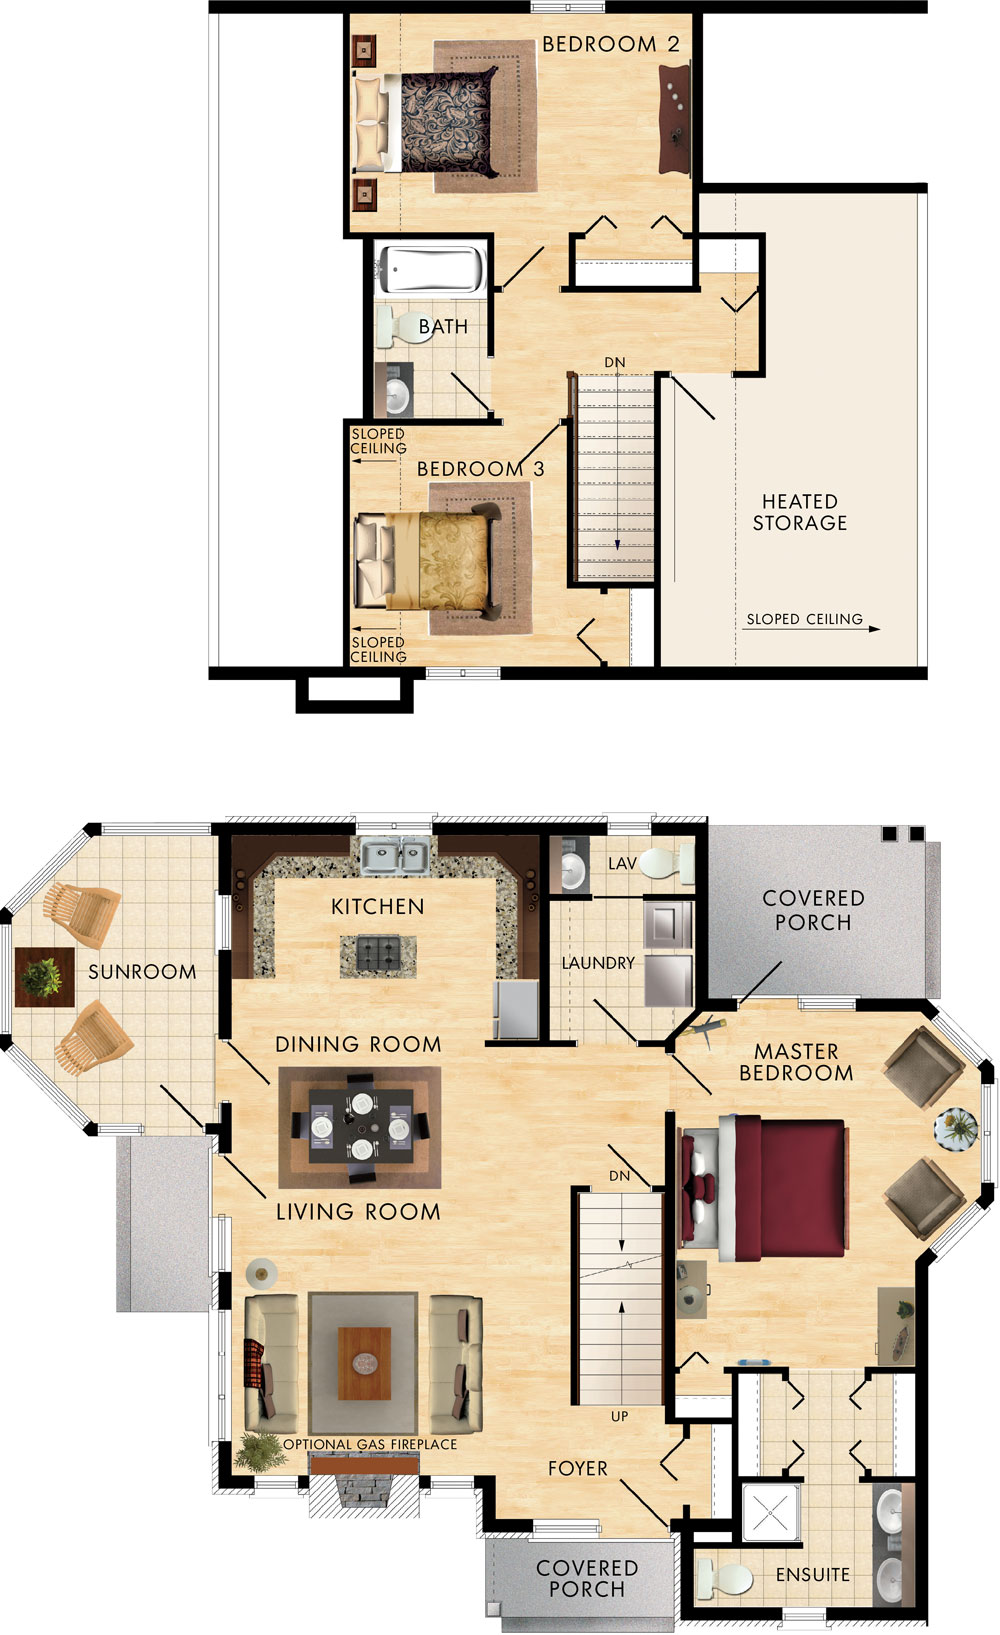 Caldwell Cove Floor Plan